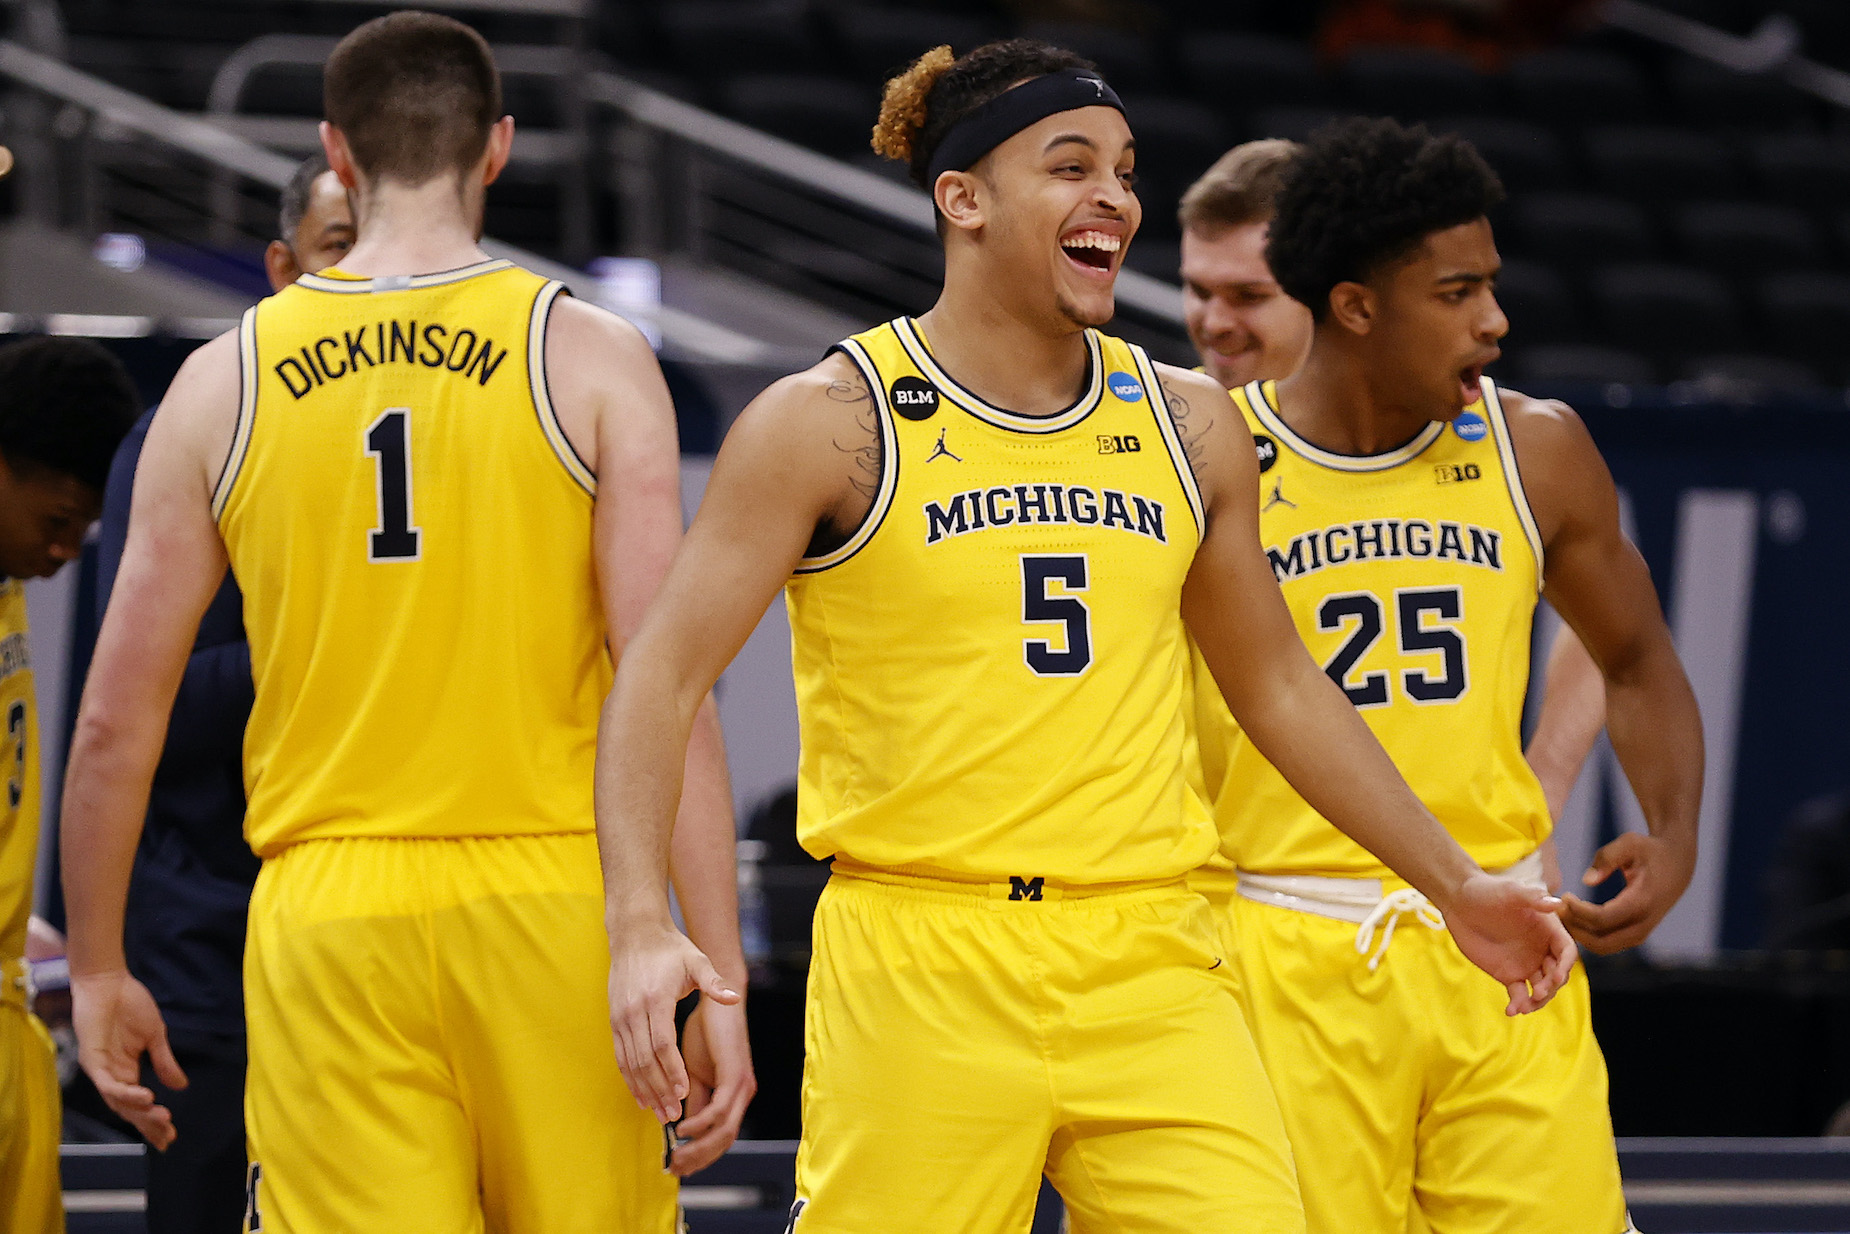 The Michigan Wolverines men's basketball team celebrate a win during the 2021 NCAA Tournament.